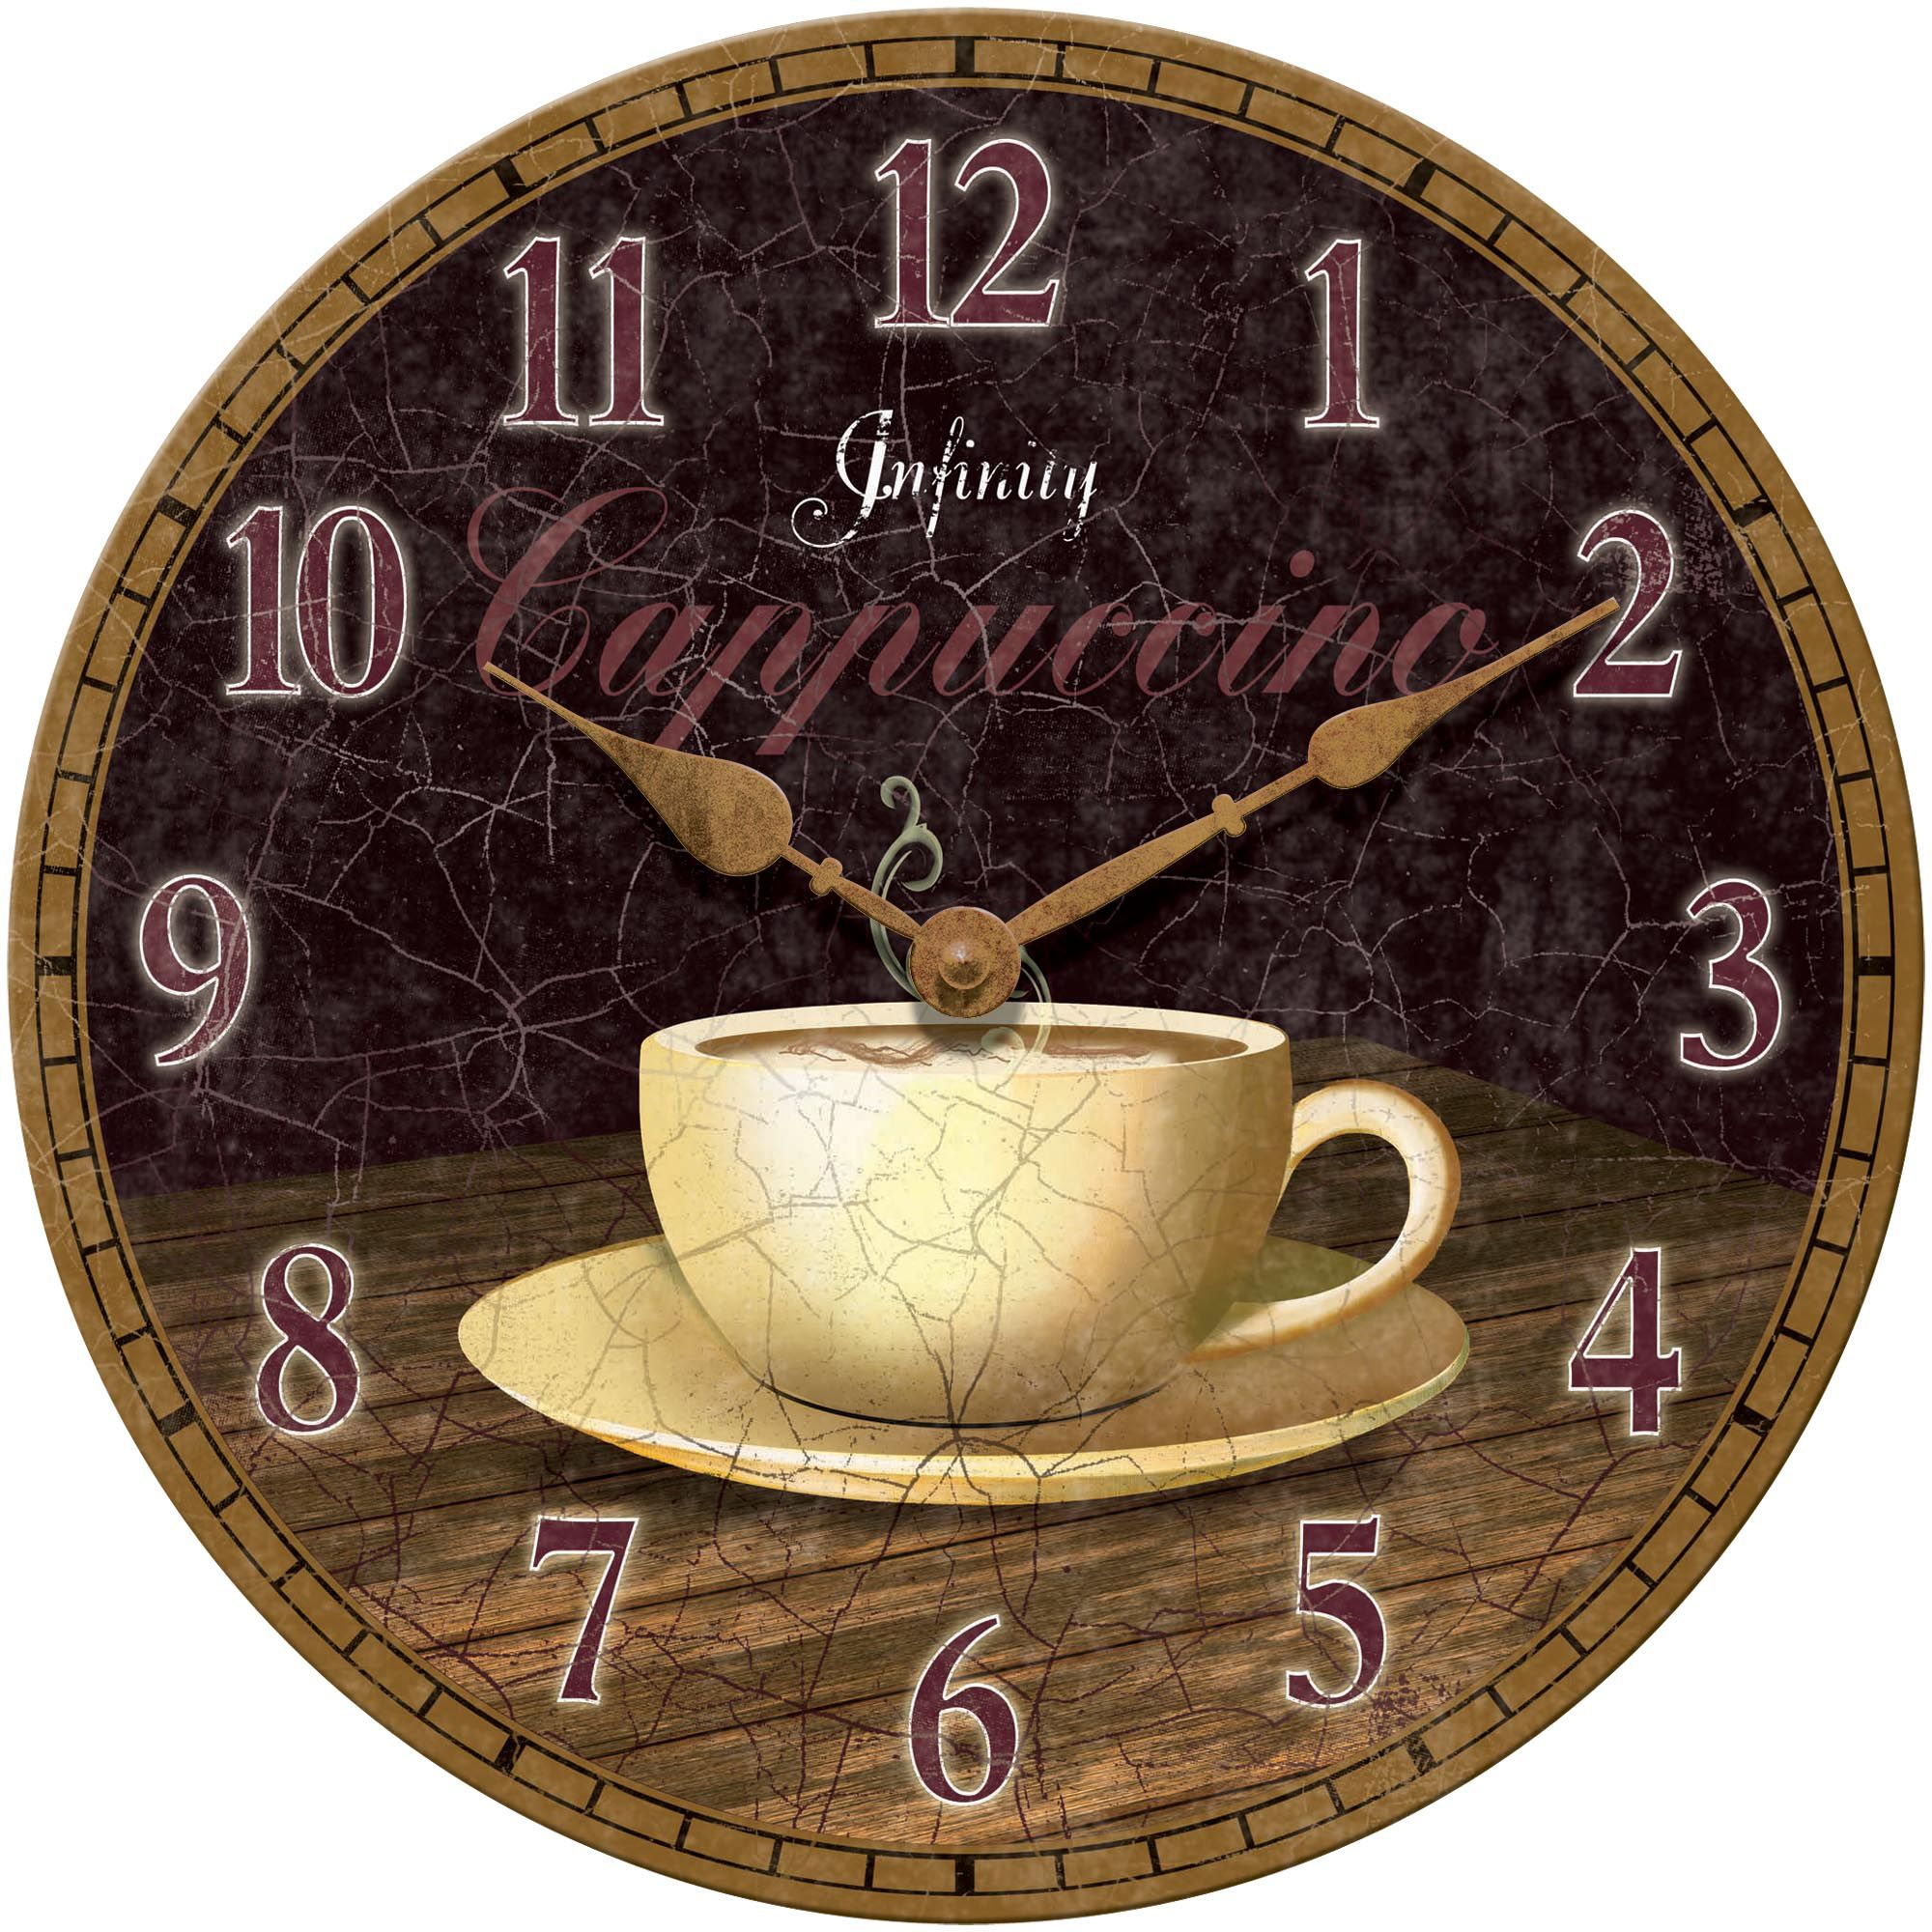 Dreamy Cappuccino by Infinity Instruments clock coffee decor